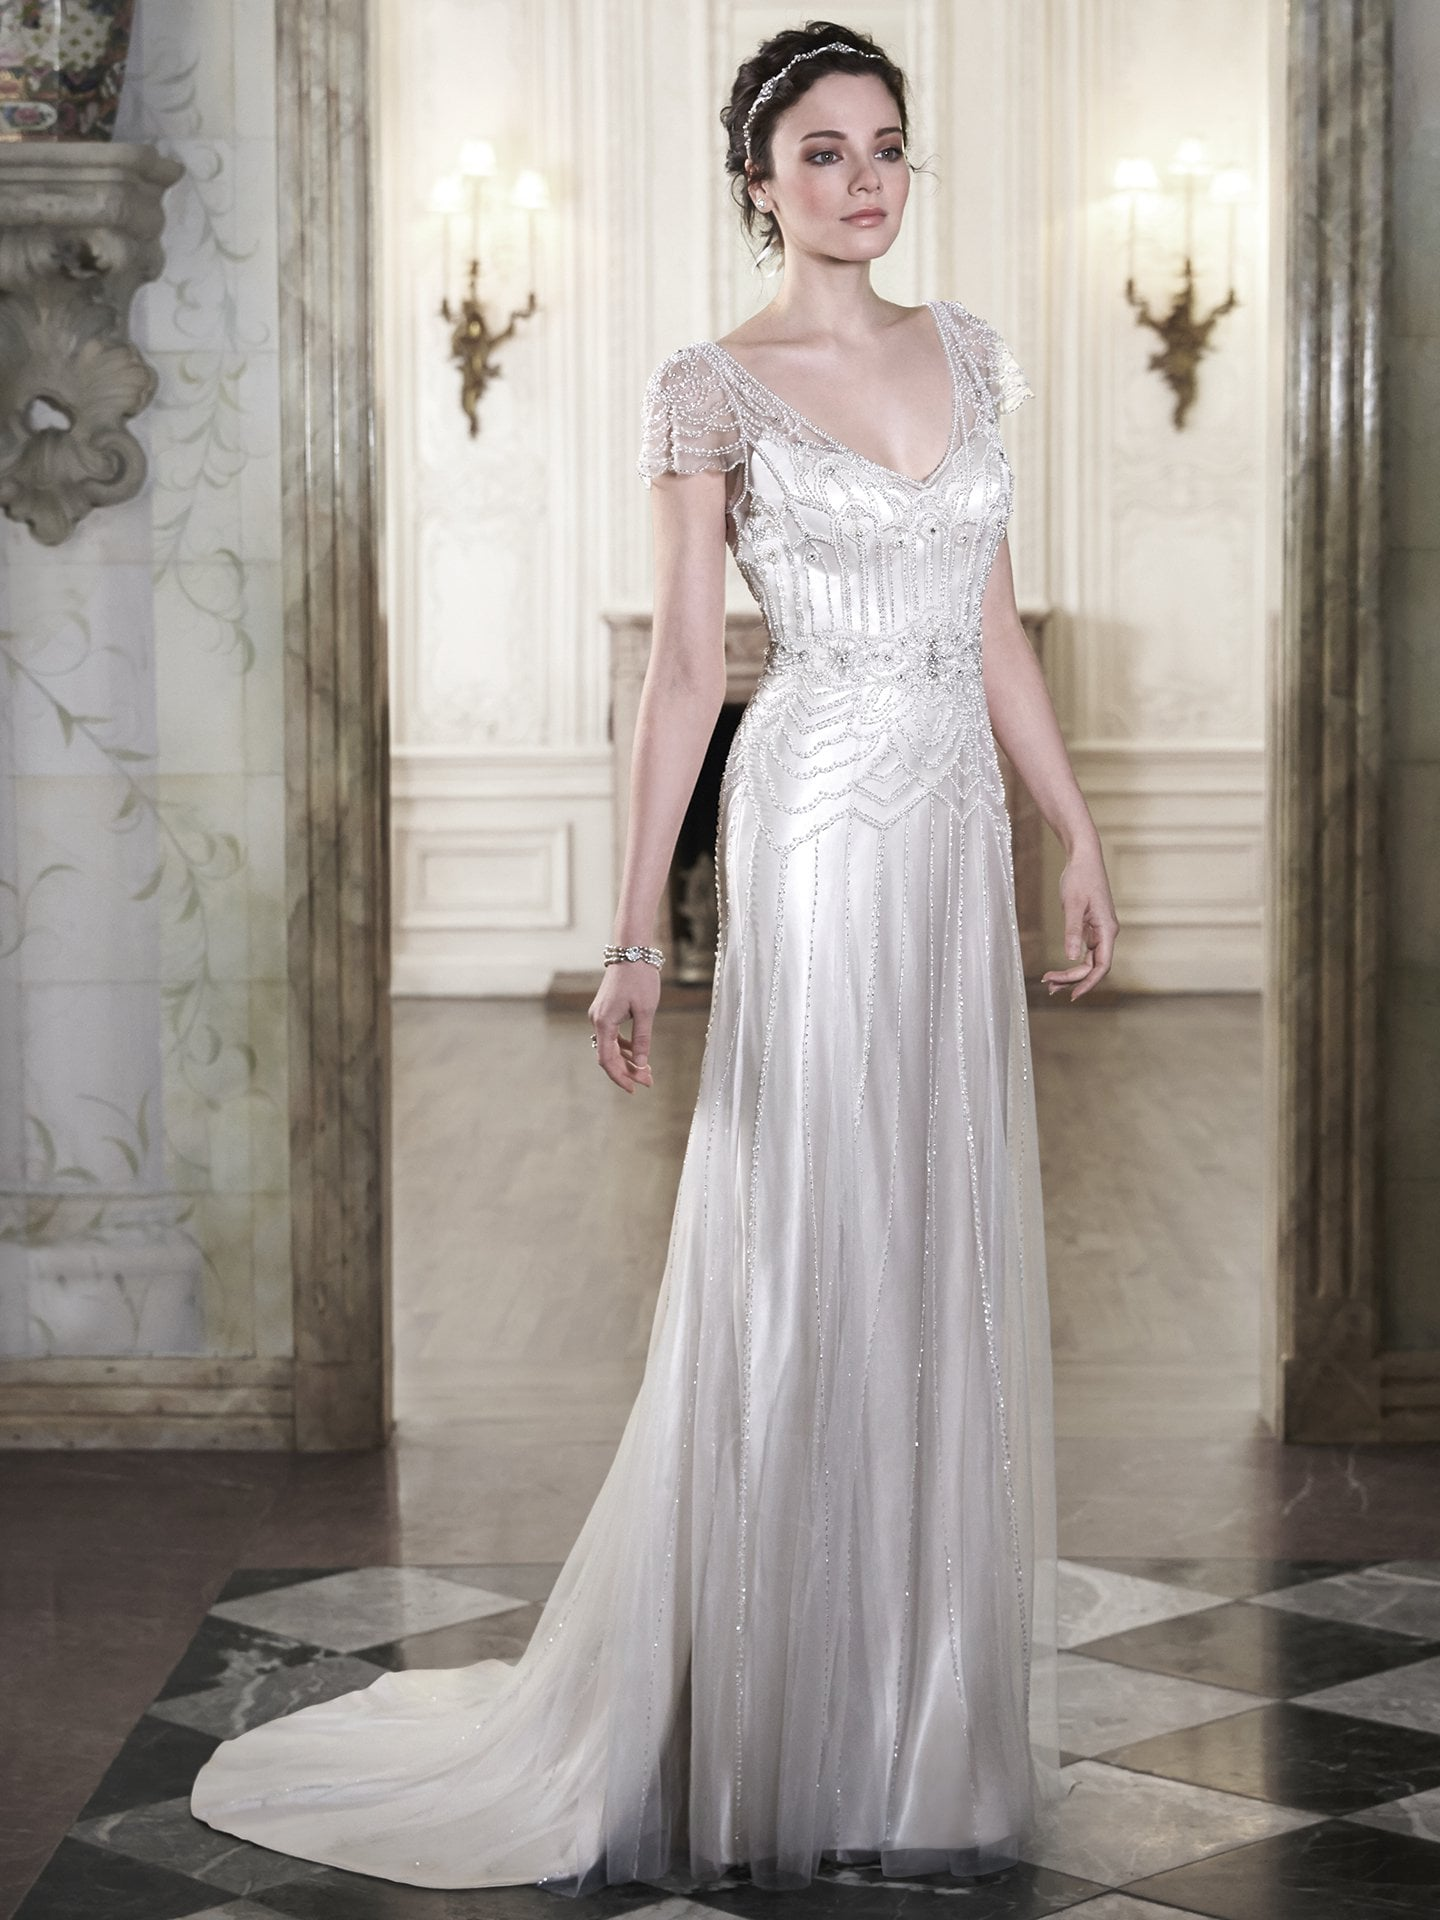 Dresses such as Maggie Sottero's 'Ettia' seem heavily influenced by the 'Downton'look.